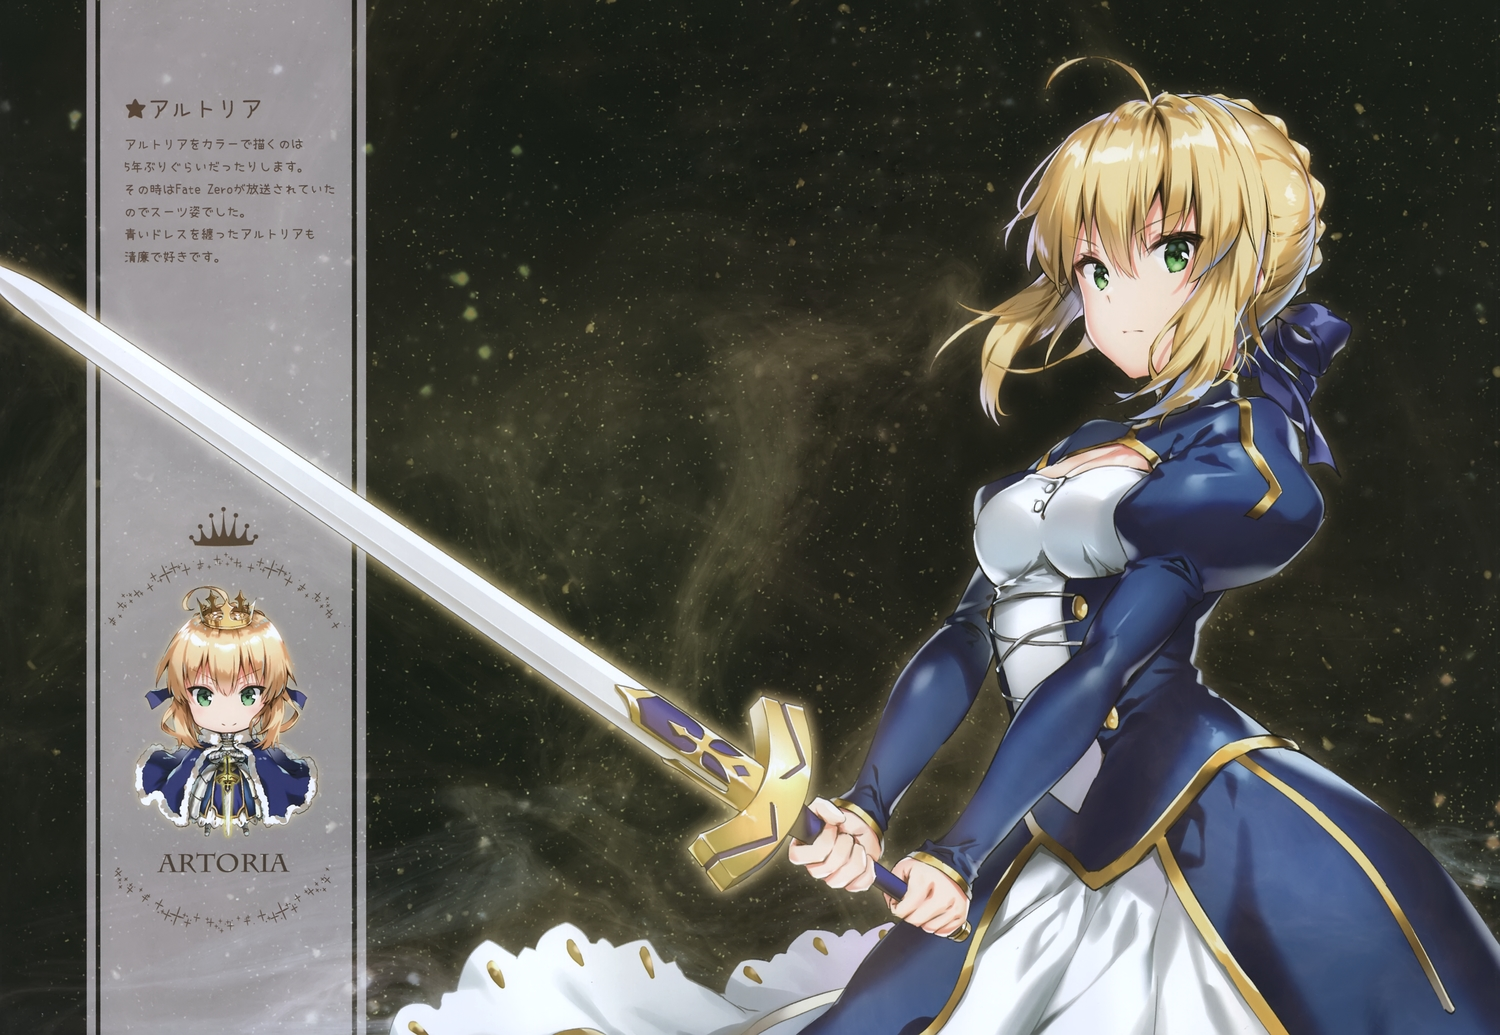 armor artoria_pendragon_(all) blonde_hair braids breasts cape chibi cleavage dress fate_(series) fate/stay_night fate/zero green_eyes ribbons riichu saber scan short_hair sword weapon